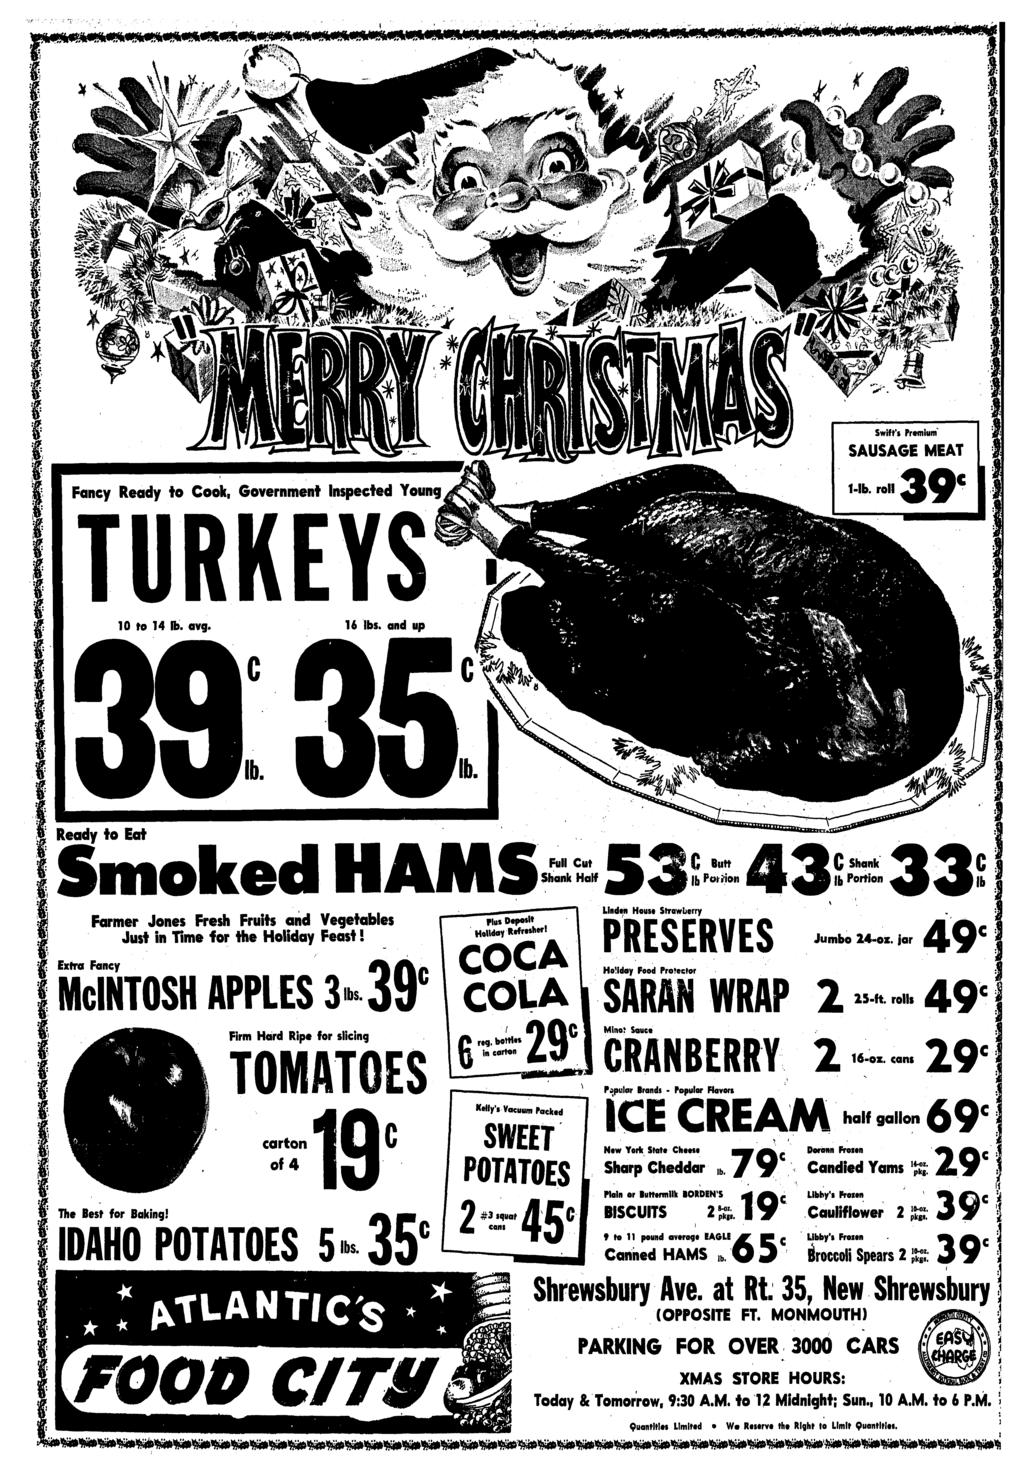 Fancy Ready to Cook, Government Inspected Young TURKEYS*) SAUSAGE MEAT C Extra Fancy Farmer Jones Fresh Fruits and Vegetables Just in Time for the Holiday Feast! The Best for Baking!